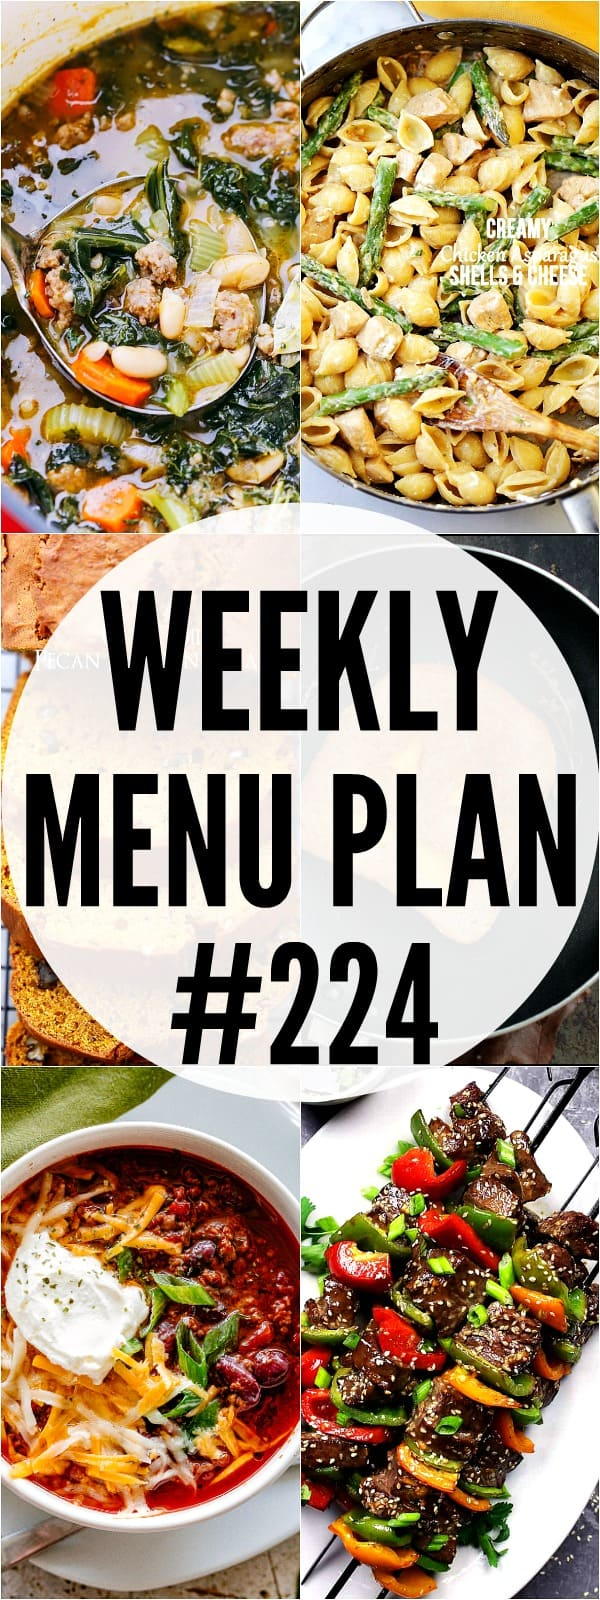 WEEKLY MENU PLAN 224 PIN IMAGE